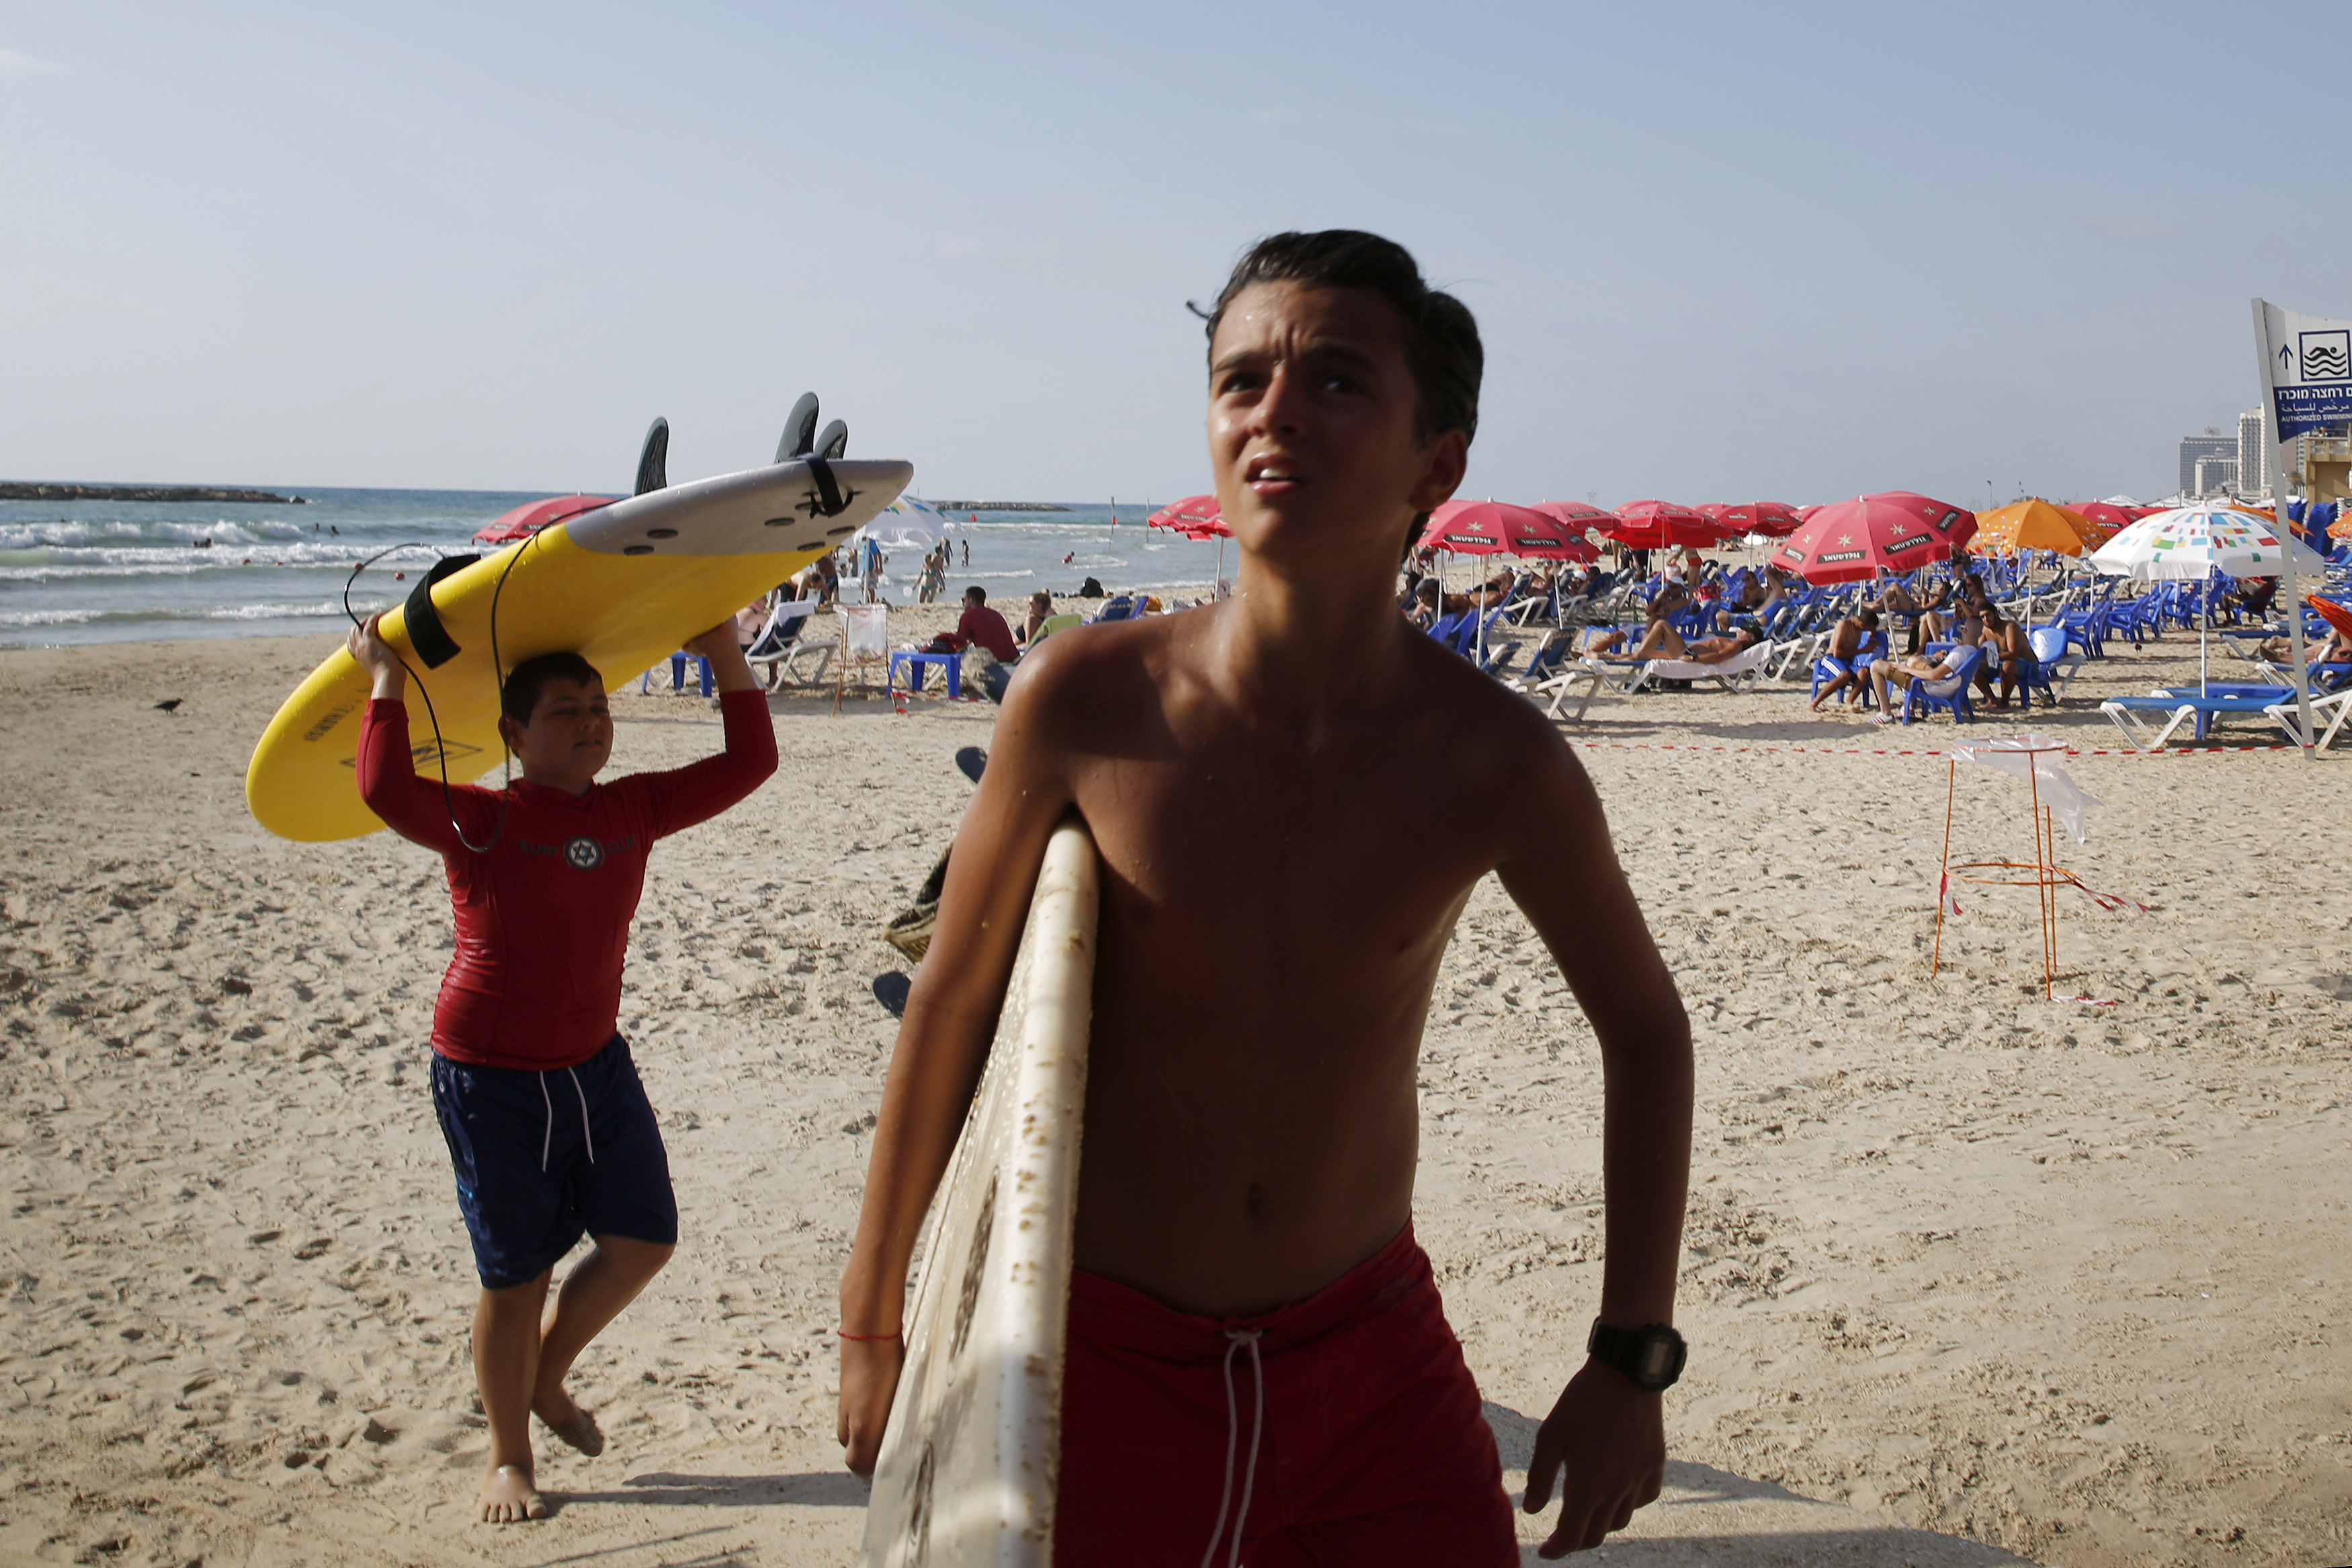 Boys carry their surfboards ashore on a Tel Aviv beach after their lesson was cancelled following a rocket from Gaza that was intercepted by Israel's Iron Dome defense system.